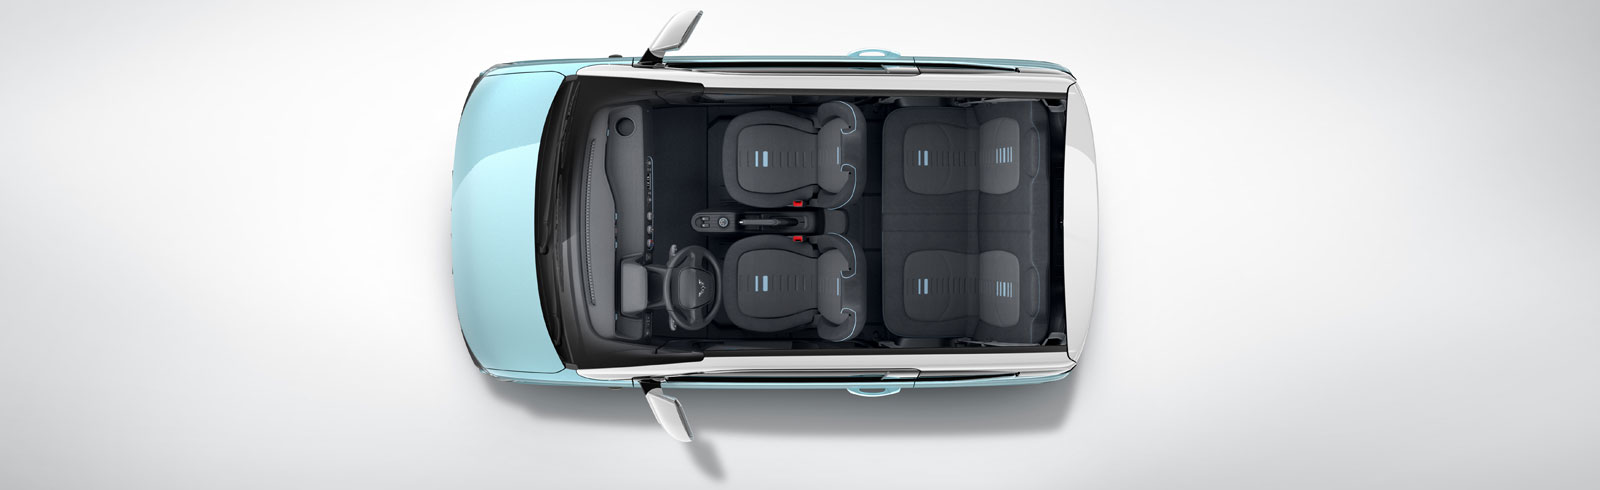 GM's Wuling teases the interior of its first all-electric vehicle, inspired by the Kei-Car in Japan